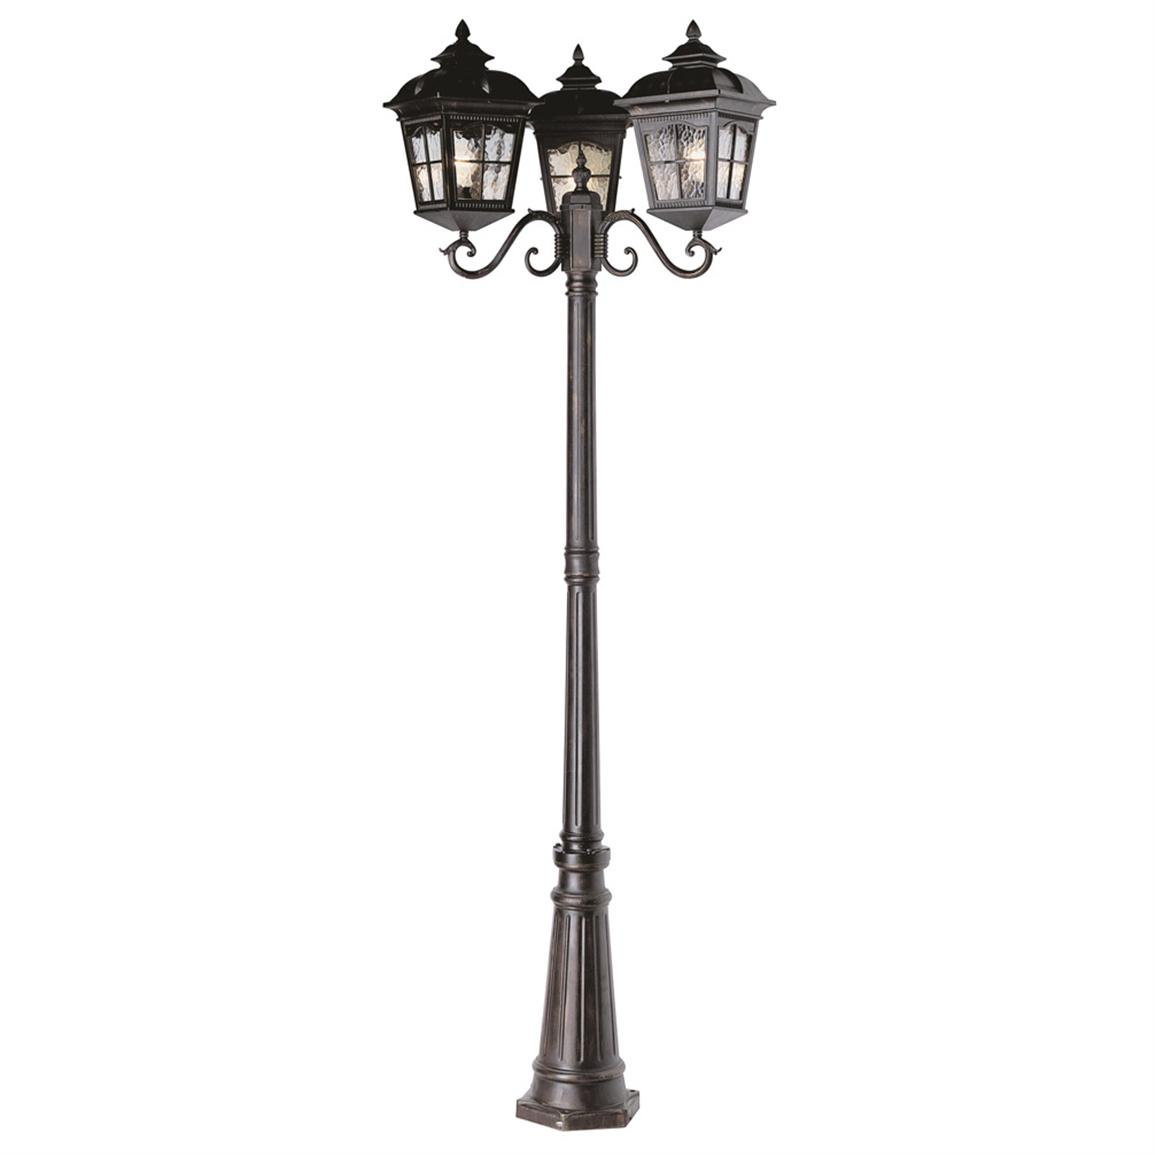 Used Light Poles : Benefits of light pole lamp warisan lighting